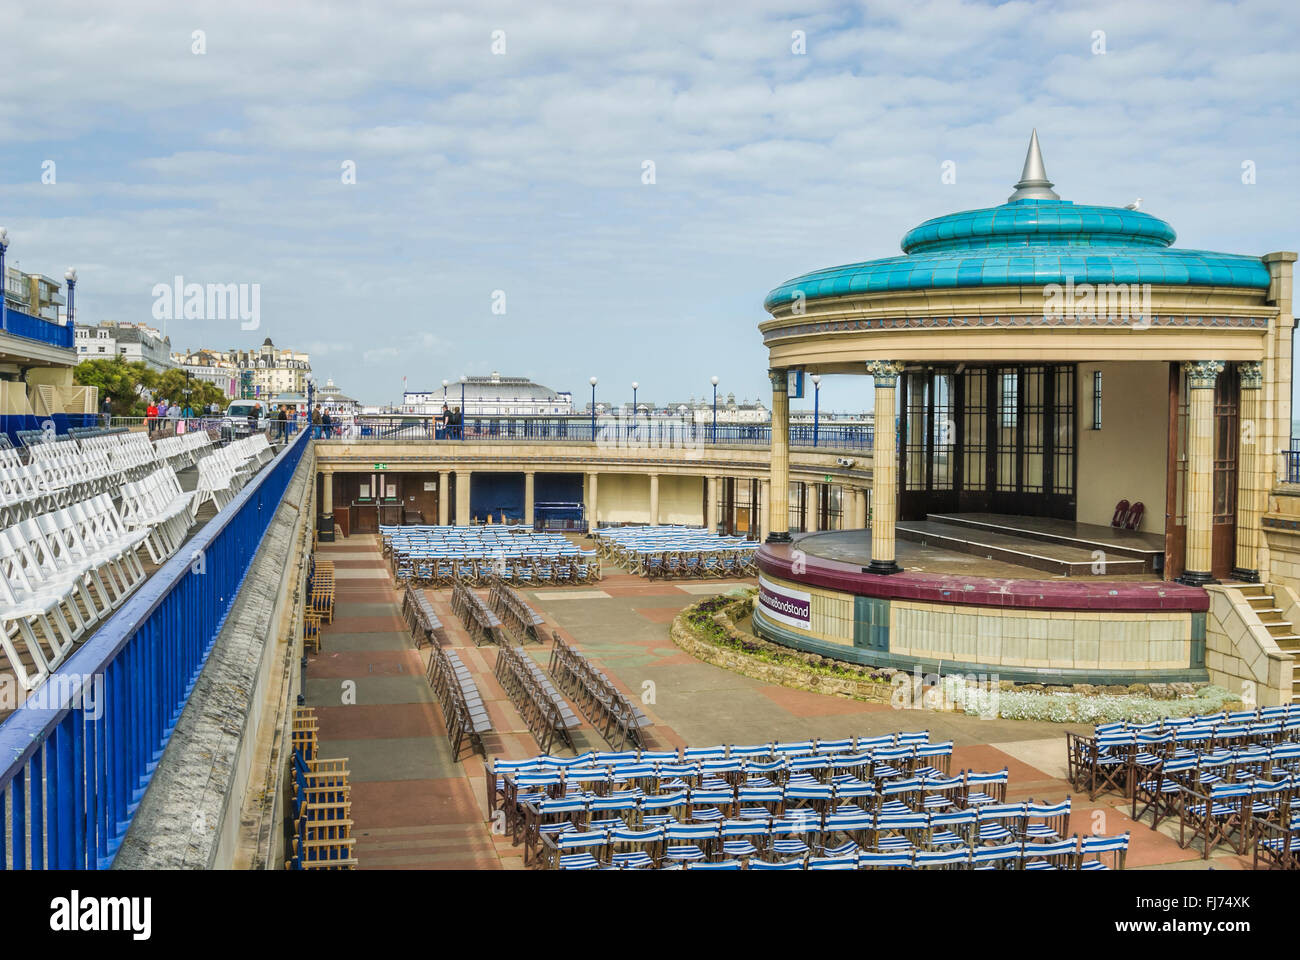 Musikpavillon am Strand Eastbourne, East Sussex, Südengland. | Musikpavillon Strang von Eastbourne, East Sussex, Stockbild